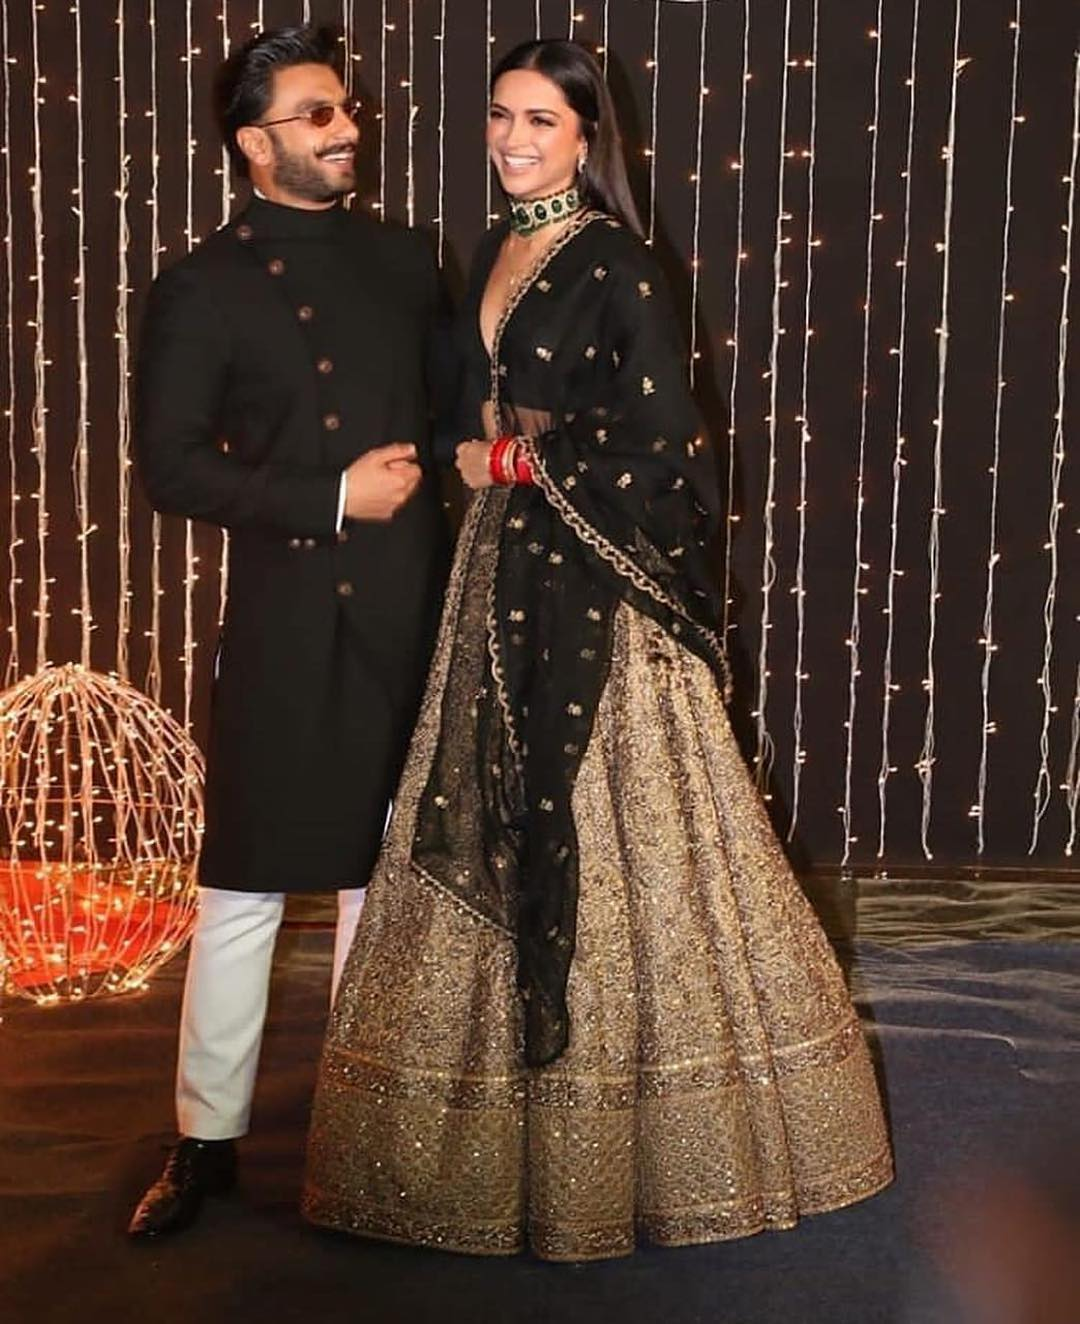 Wedding Reception Of Priyanka And Nick Continues, The Couple Hosts A Party For All The Bollywood Stars